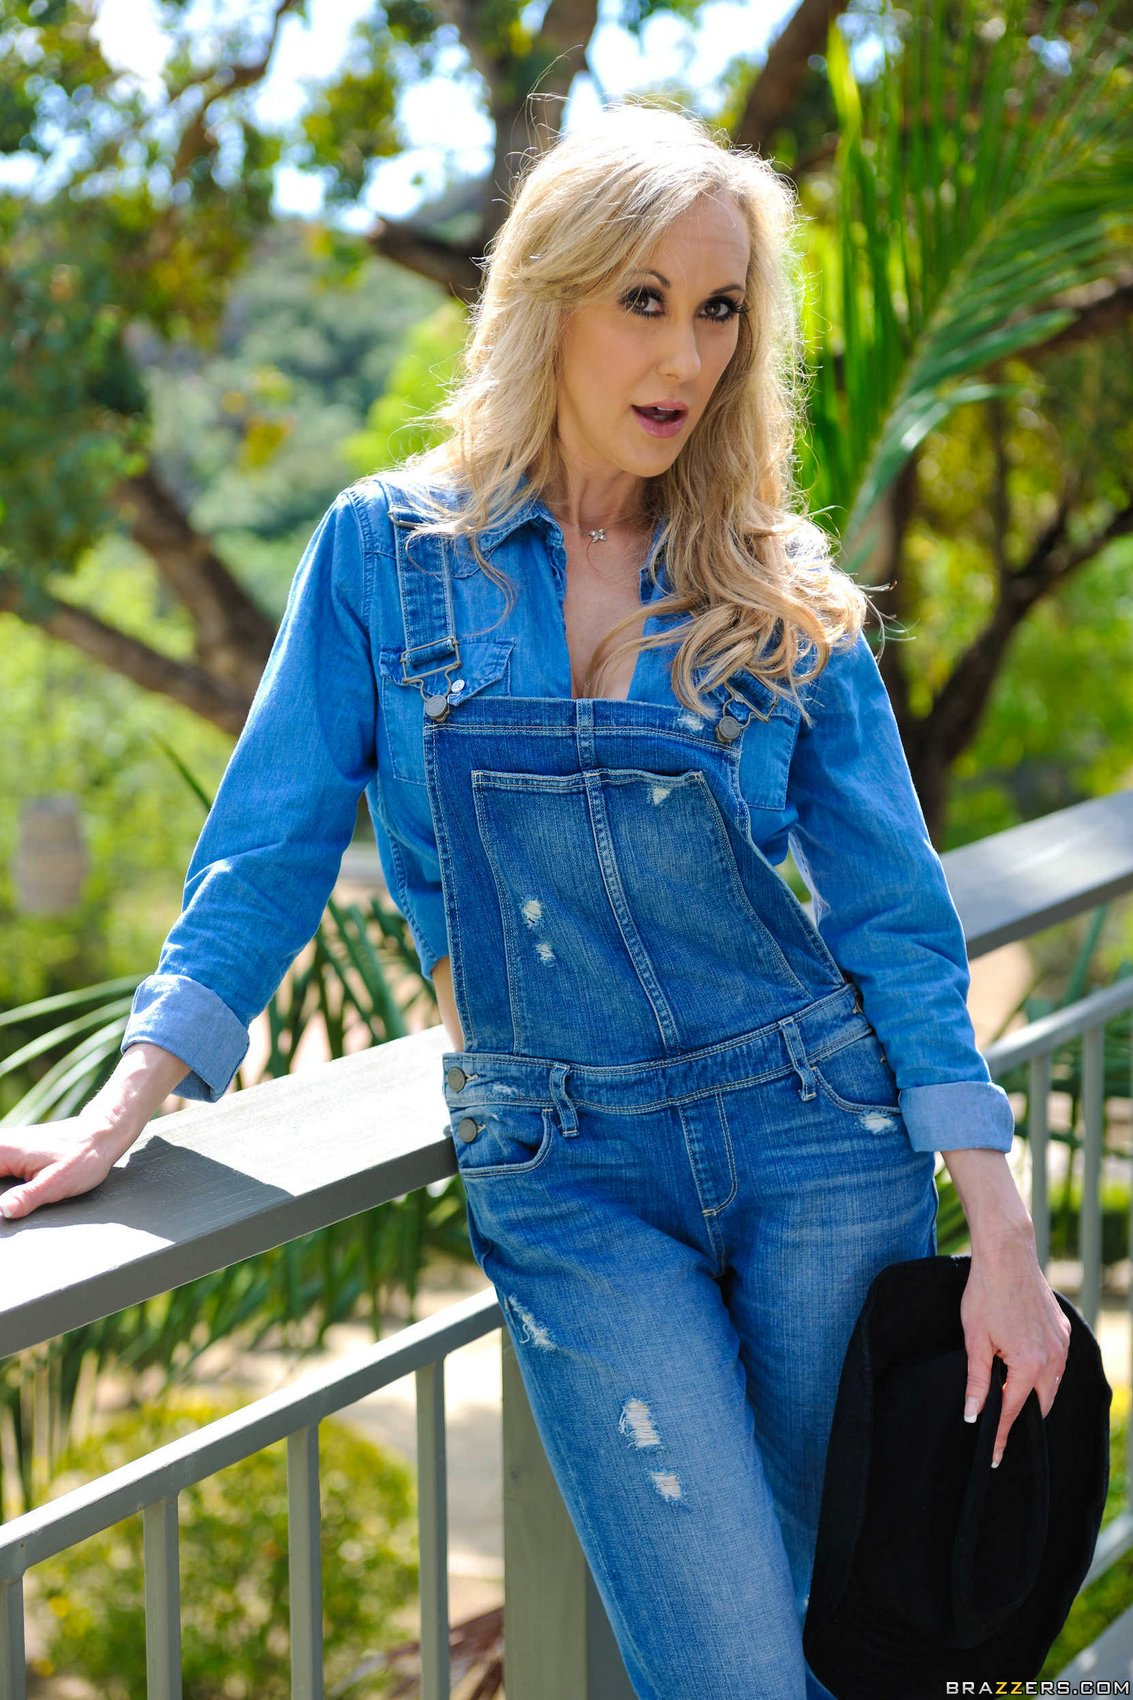 brandi love in sexy jeans and boots stripping outdoor my